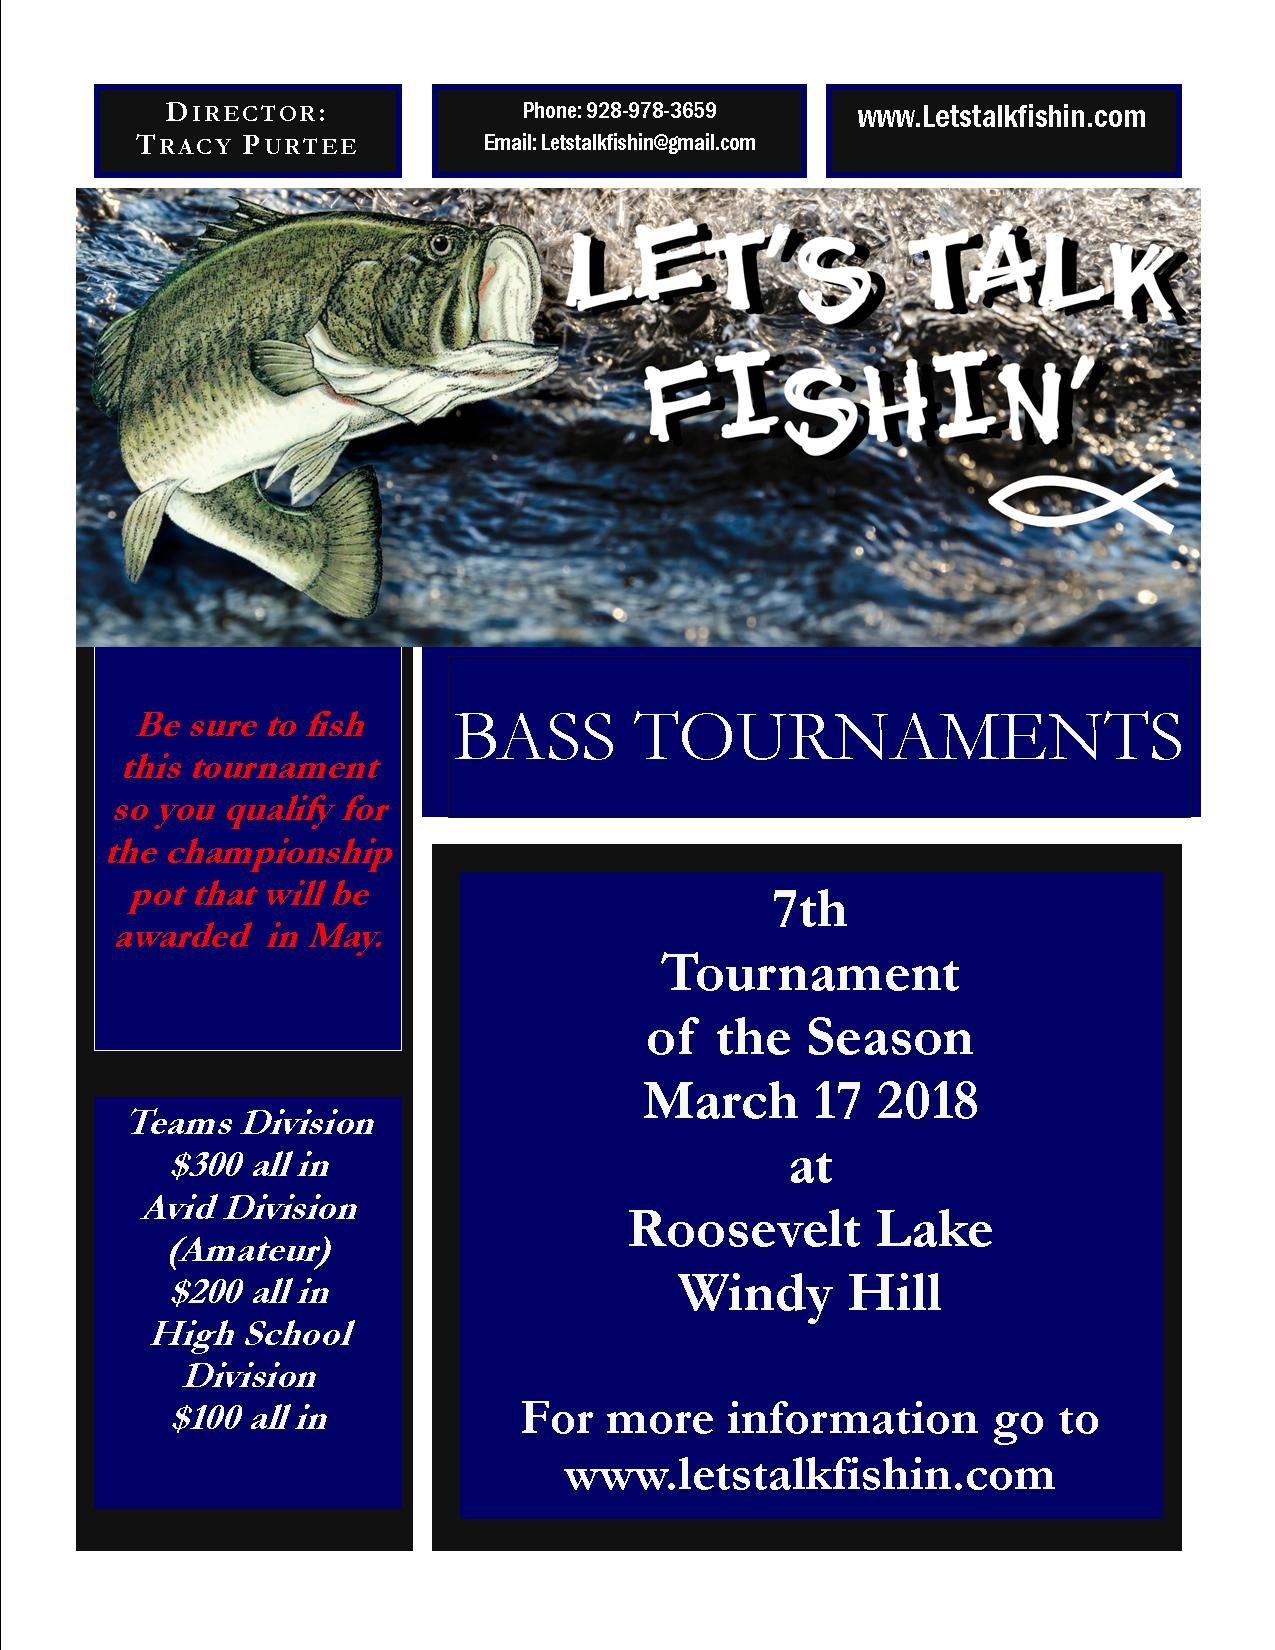 Click image for larger version  Name:7th Tournament.jpg Views:1542 Size:283.6 KB ID:96826